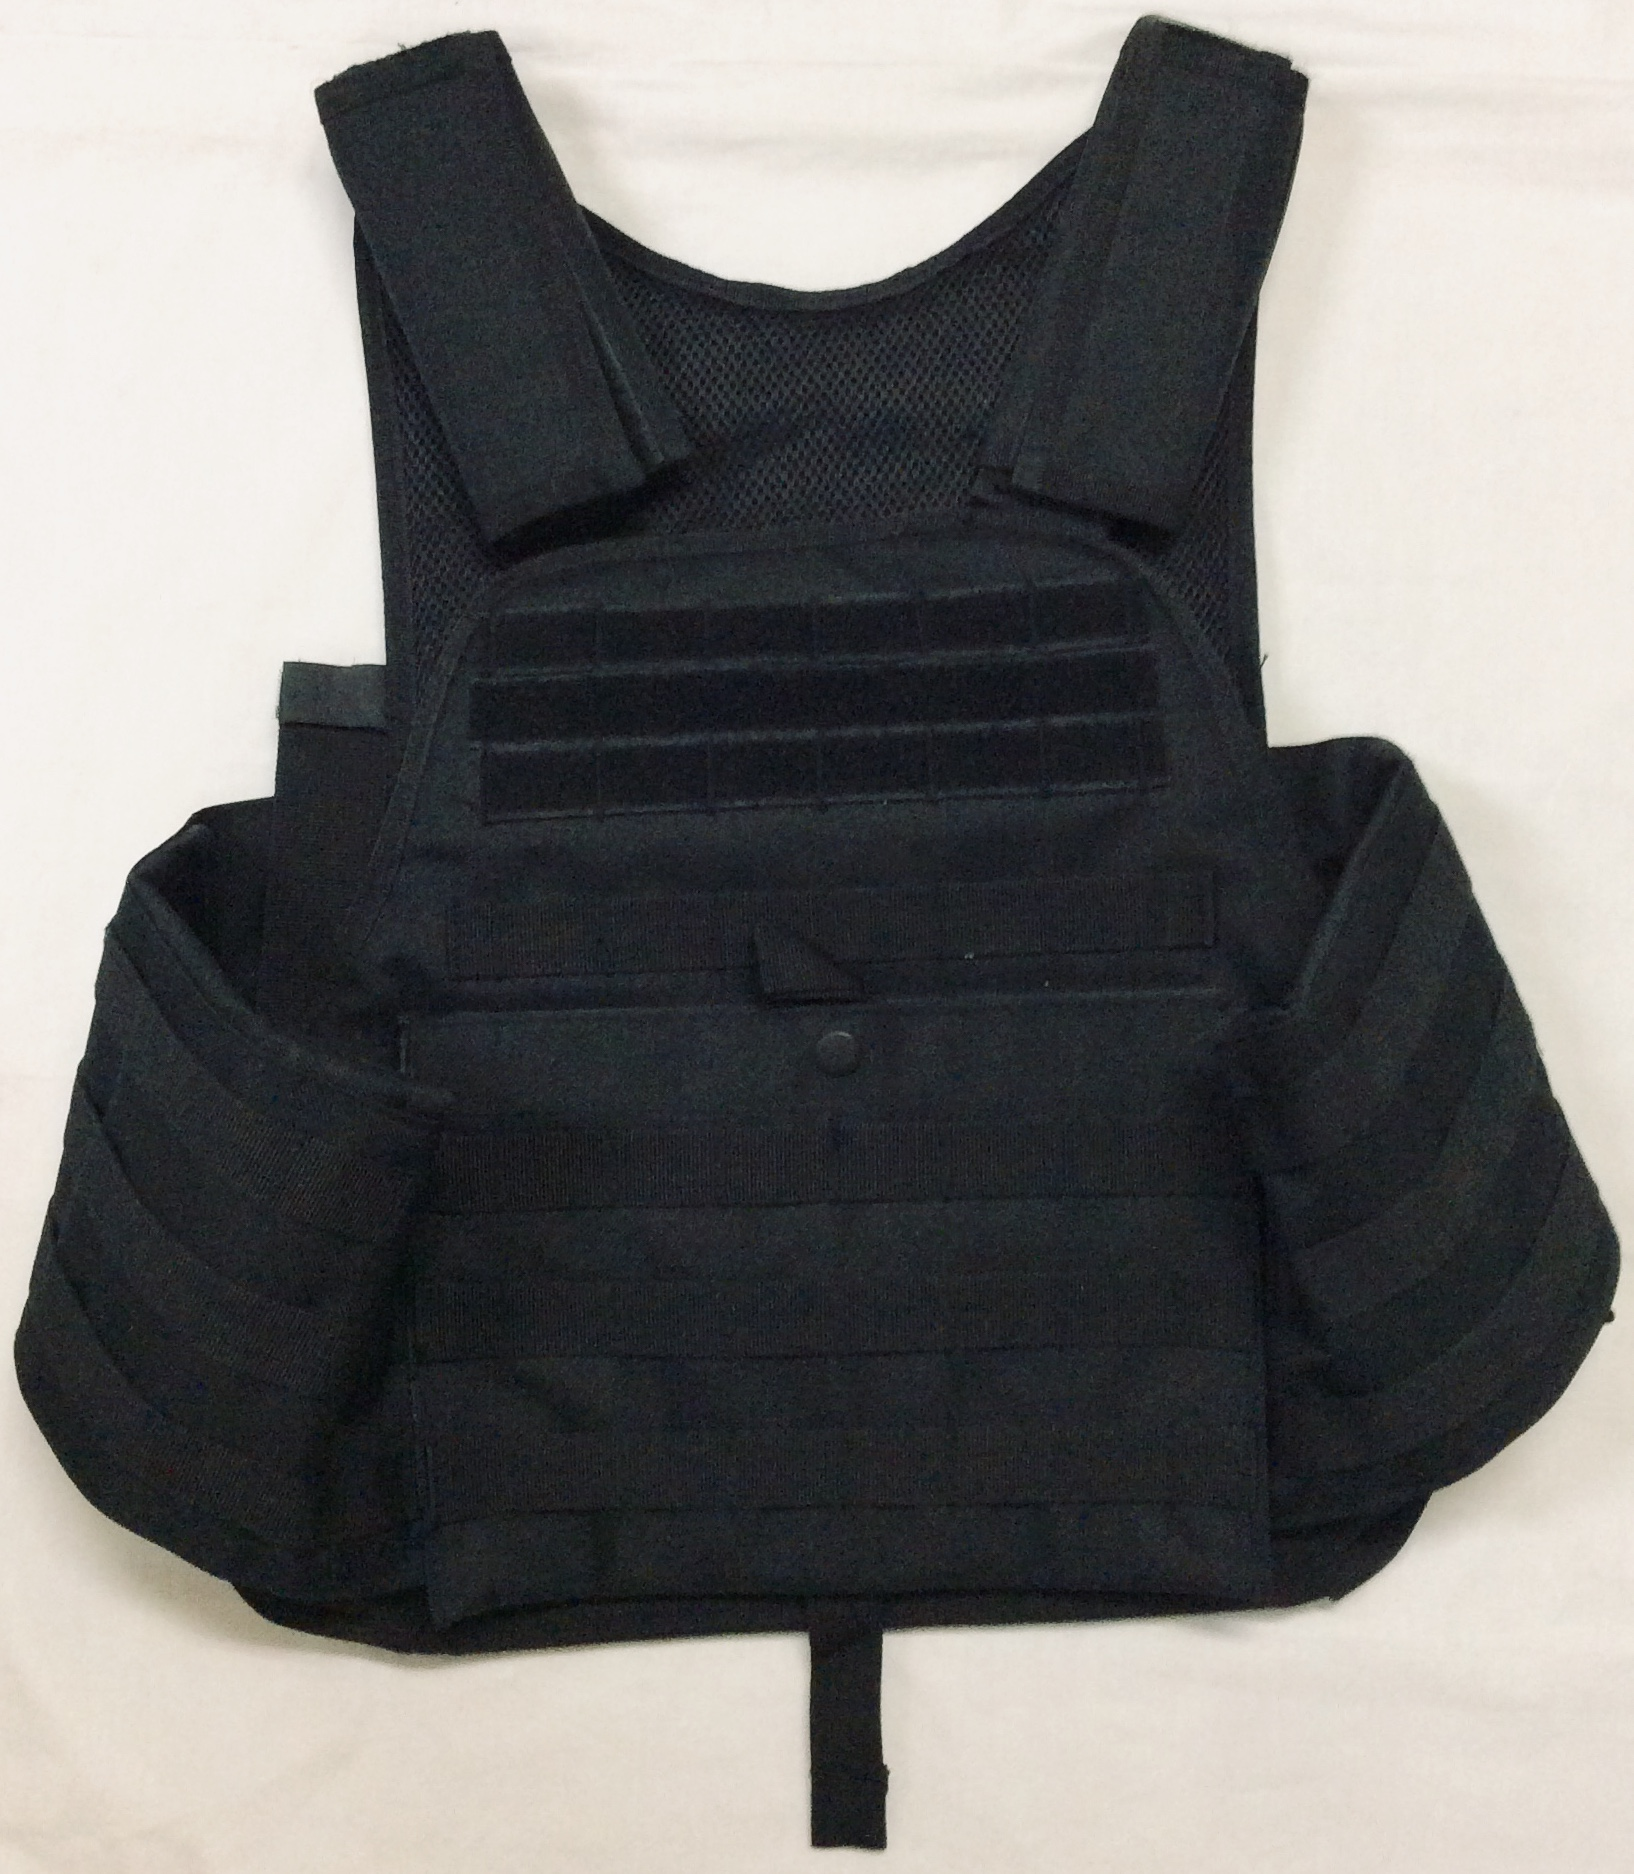 Rothco Black tactical plate carrier